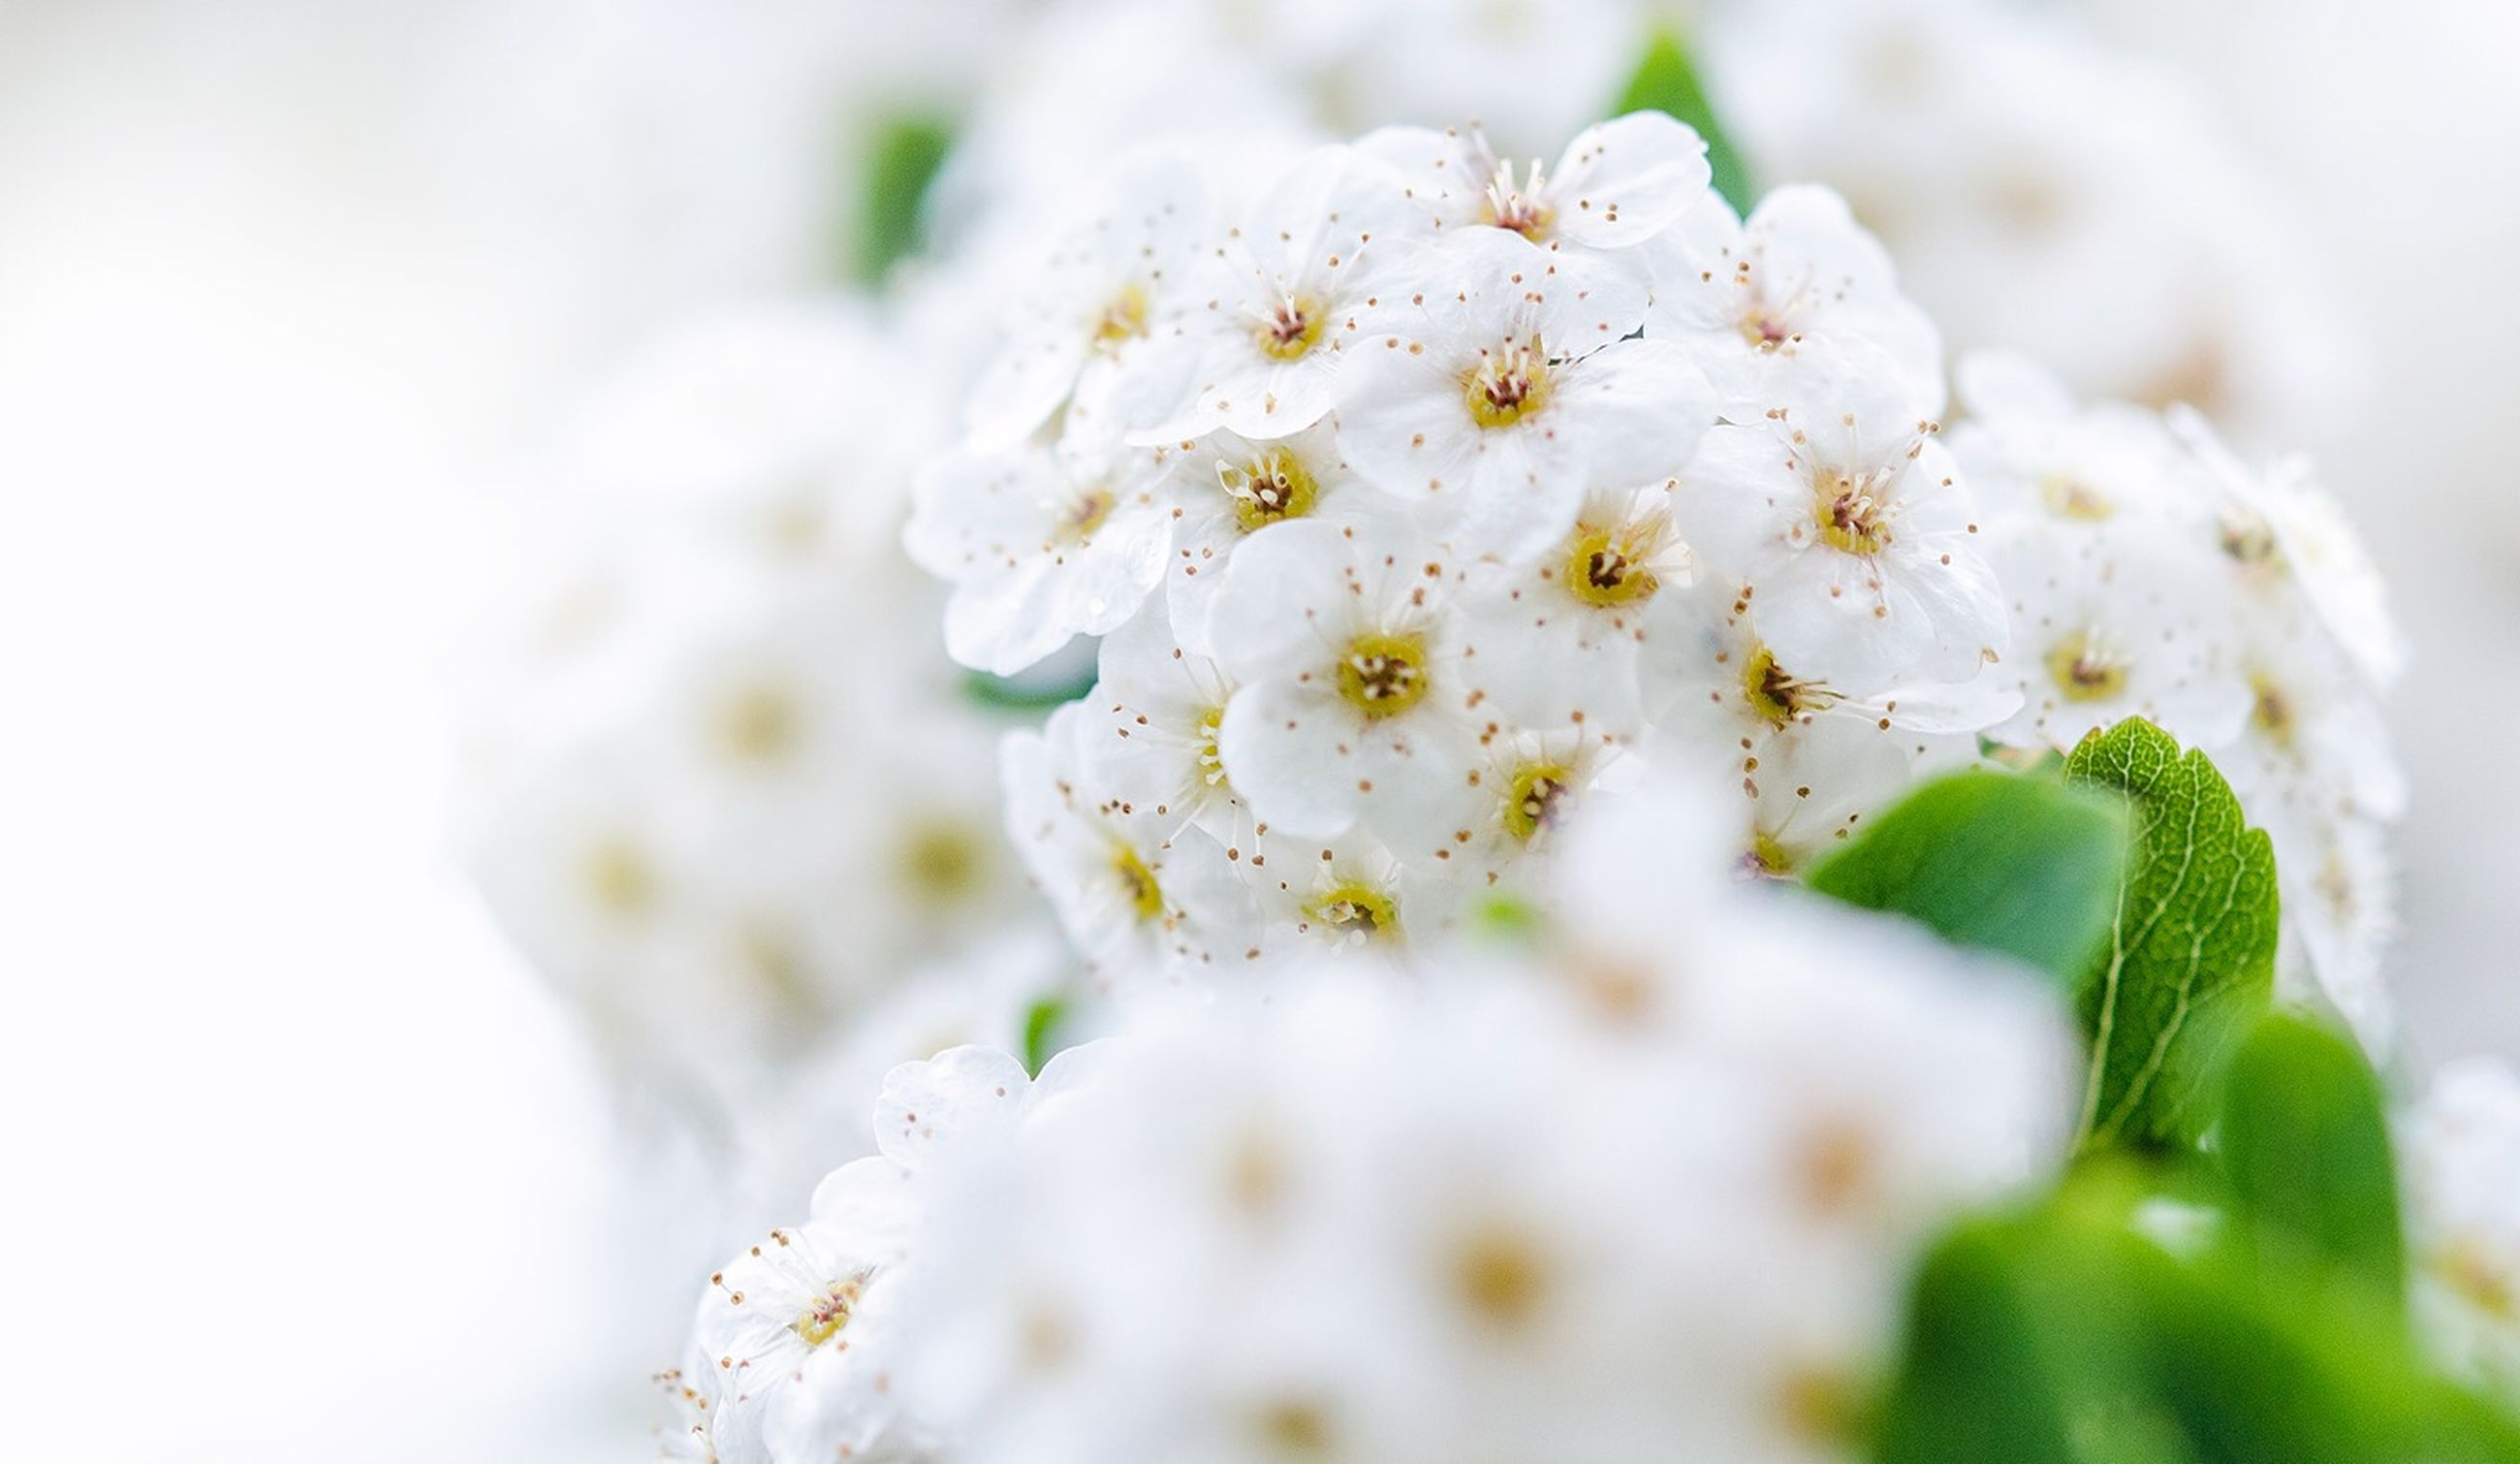 flower, white color, freshness, fragility, petal, close-up, growth, flower head, beauty in nature, focus on foreground, white, nature, selective focus, blooming, blossom, plant, pollen, stamen, in bloom, botany